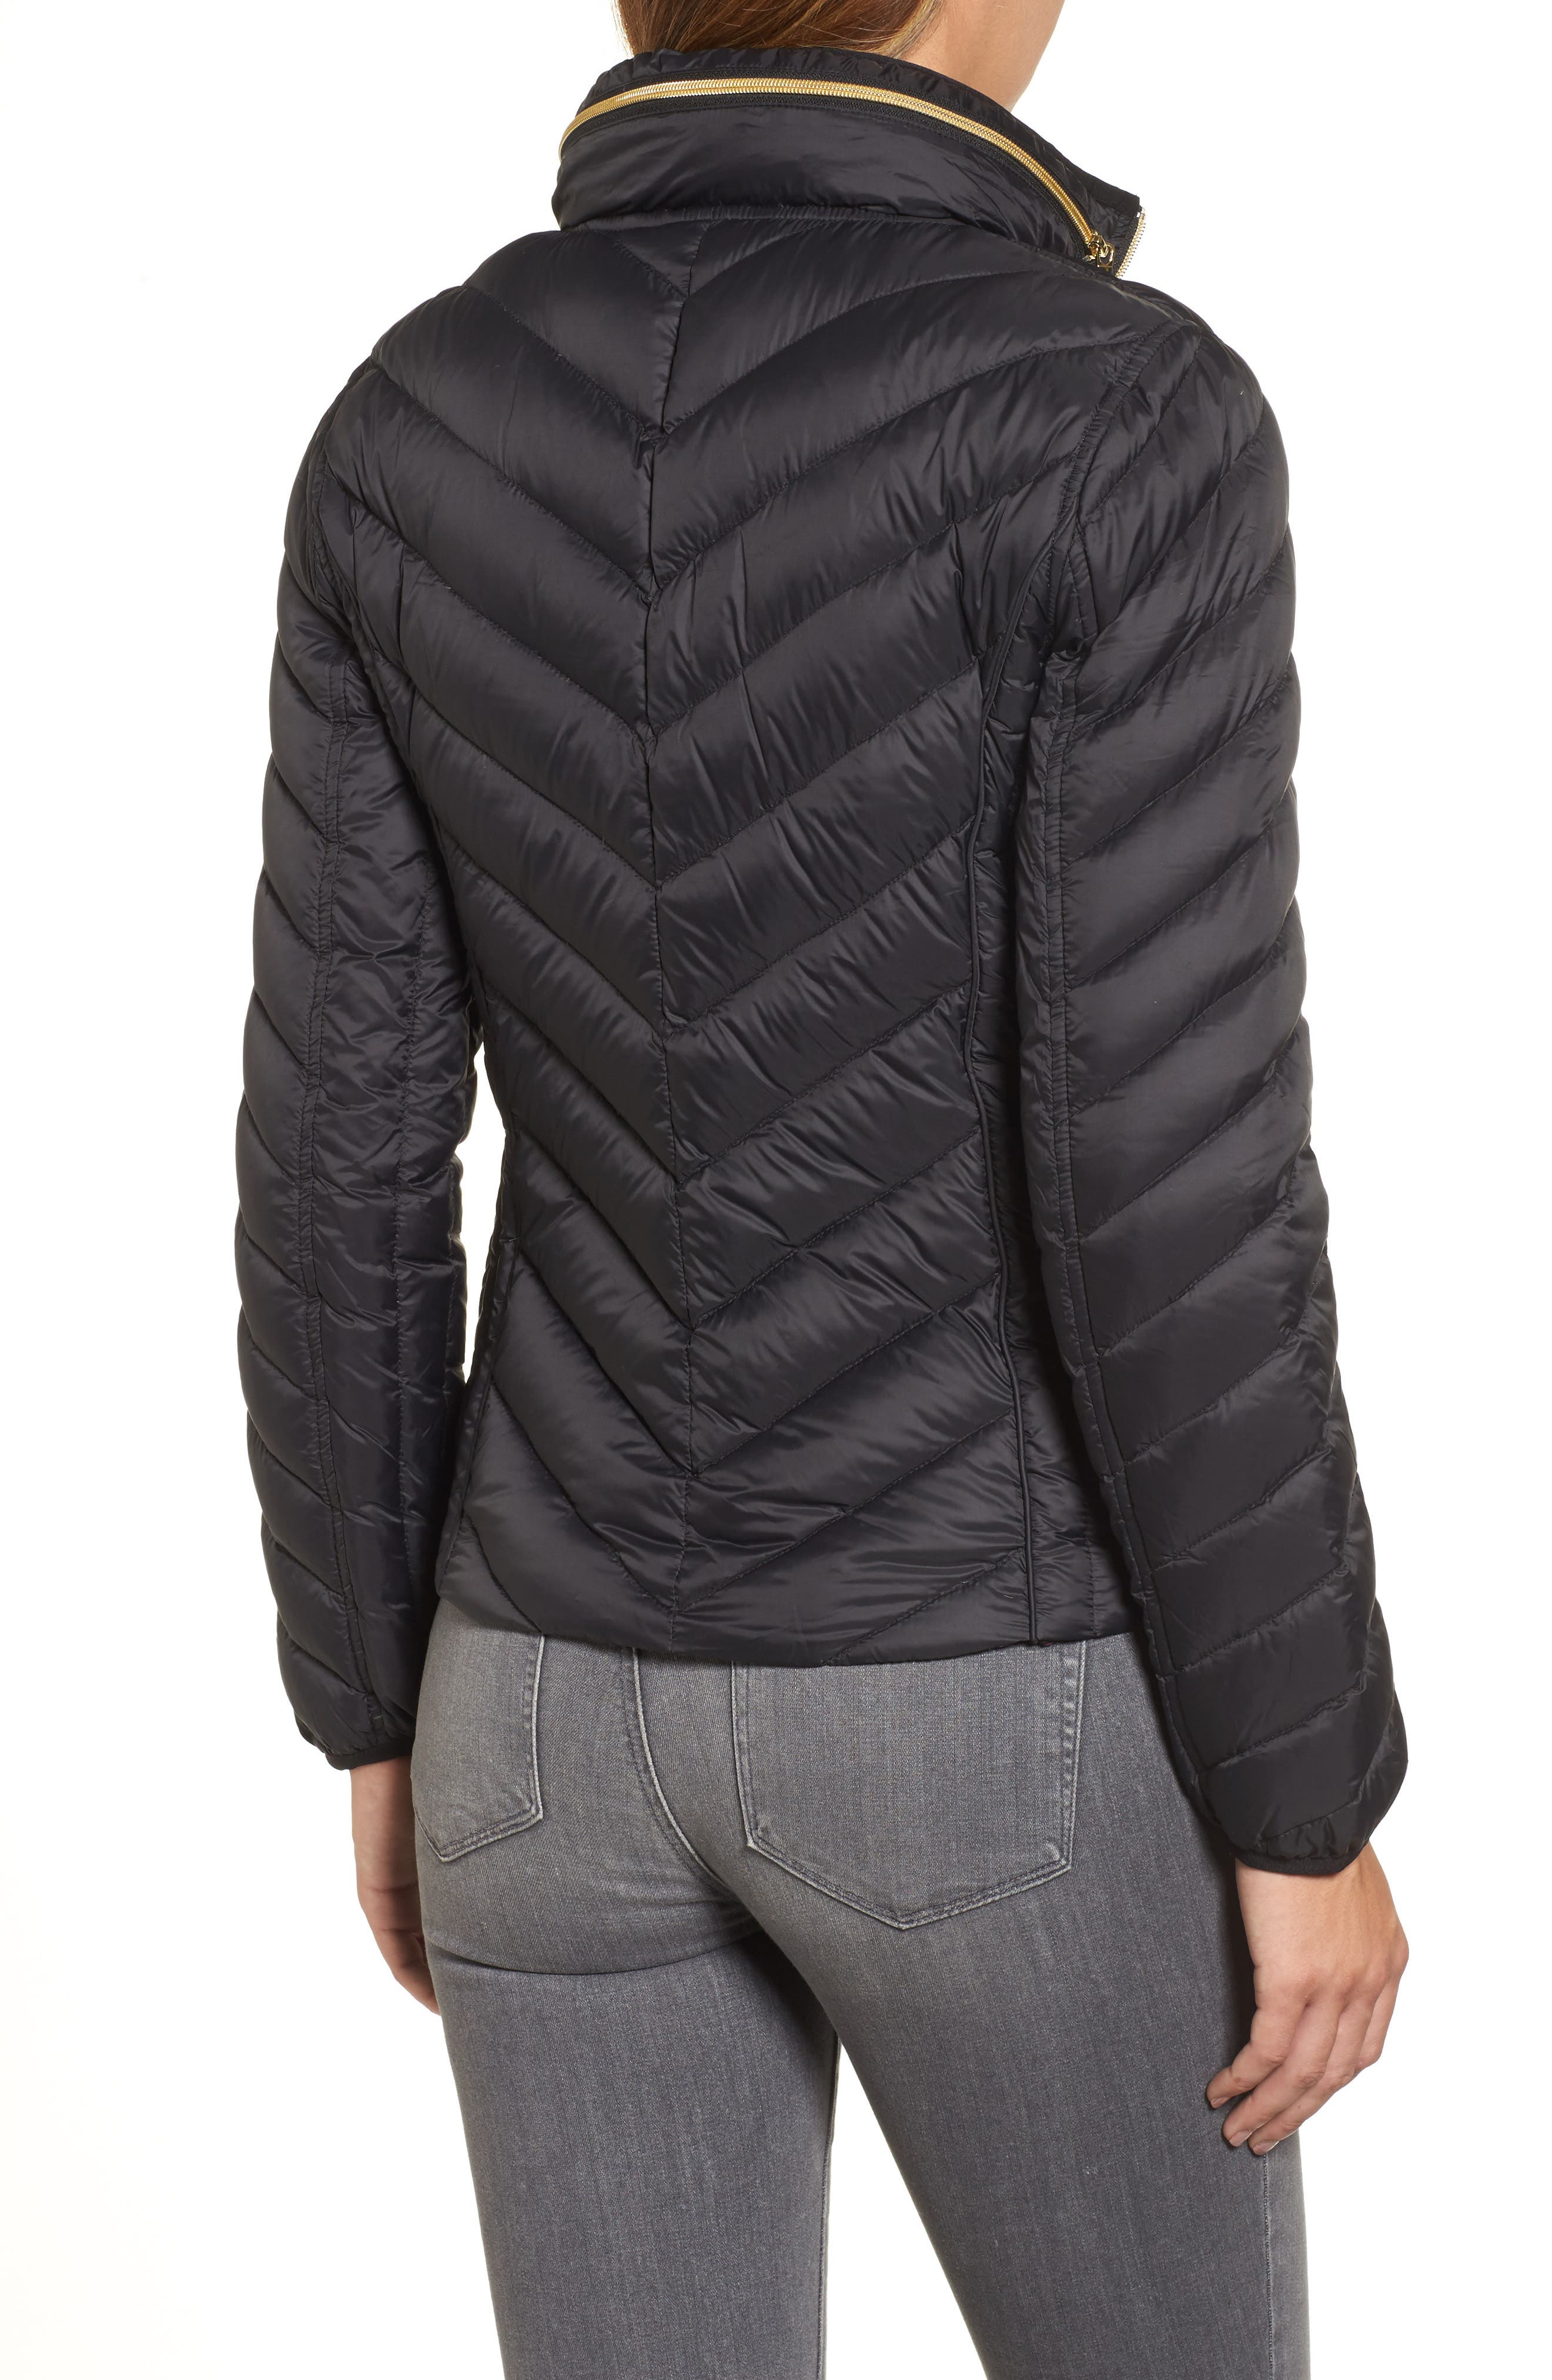 Chevron Quilted Packable Down Puffer Jacket with Stowaway Hood,                             Alternate thumbnail 2, color,                             001